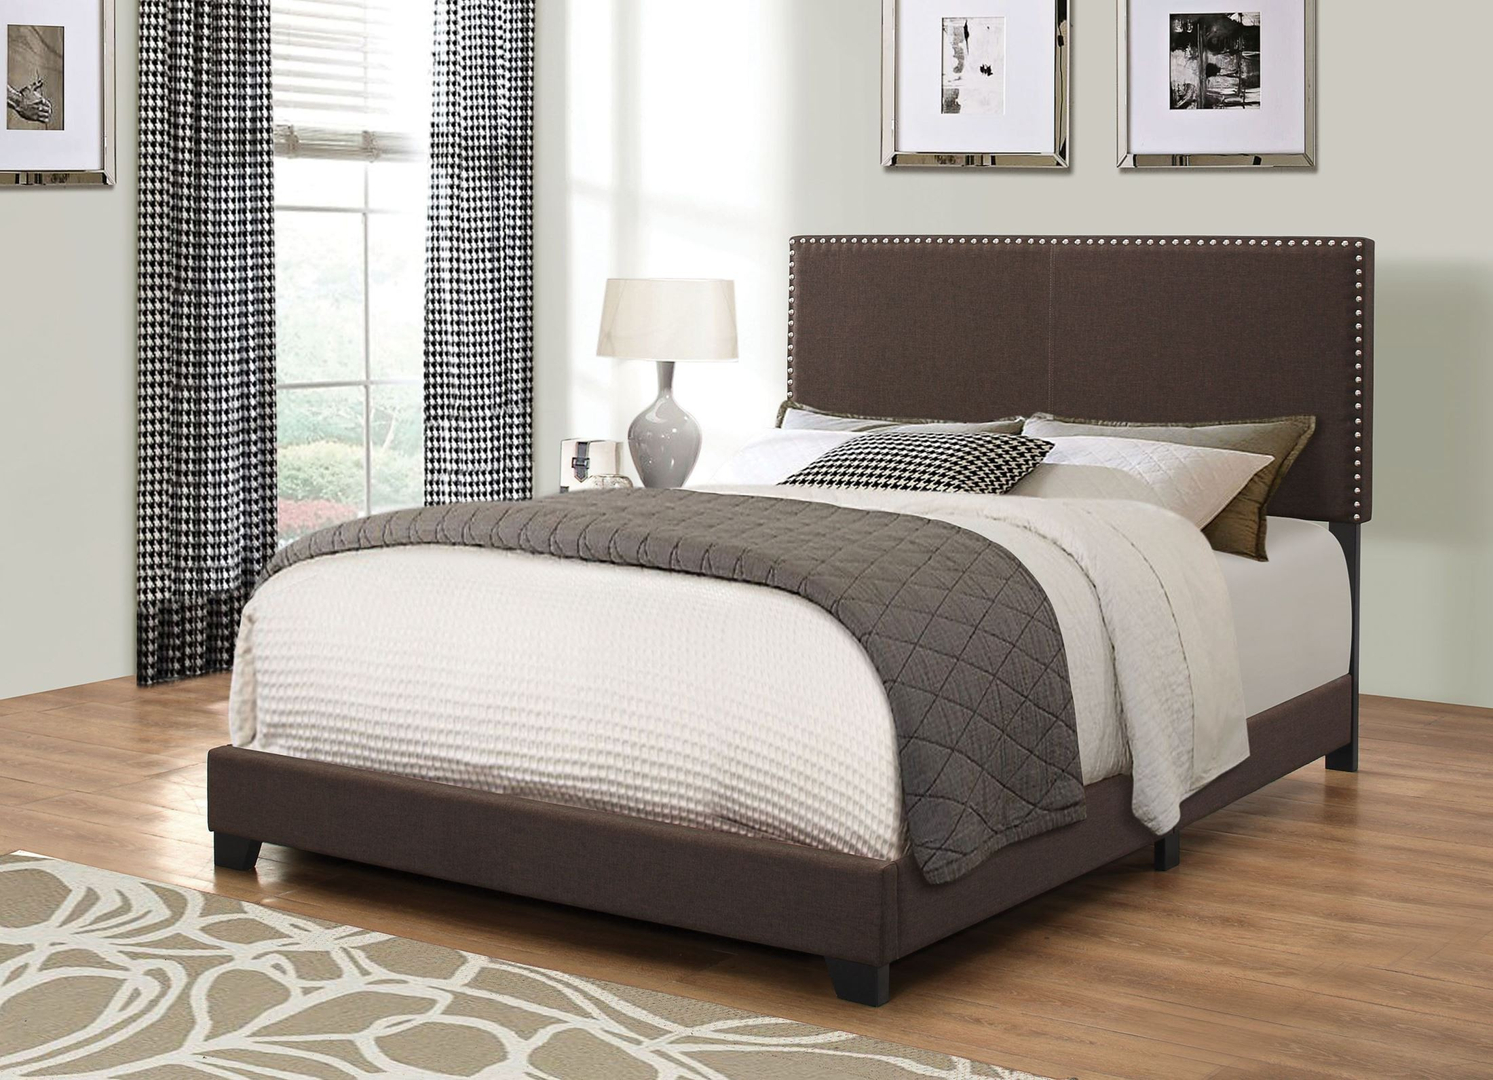 jbf - Bed Frame And Mattress Combo